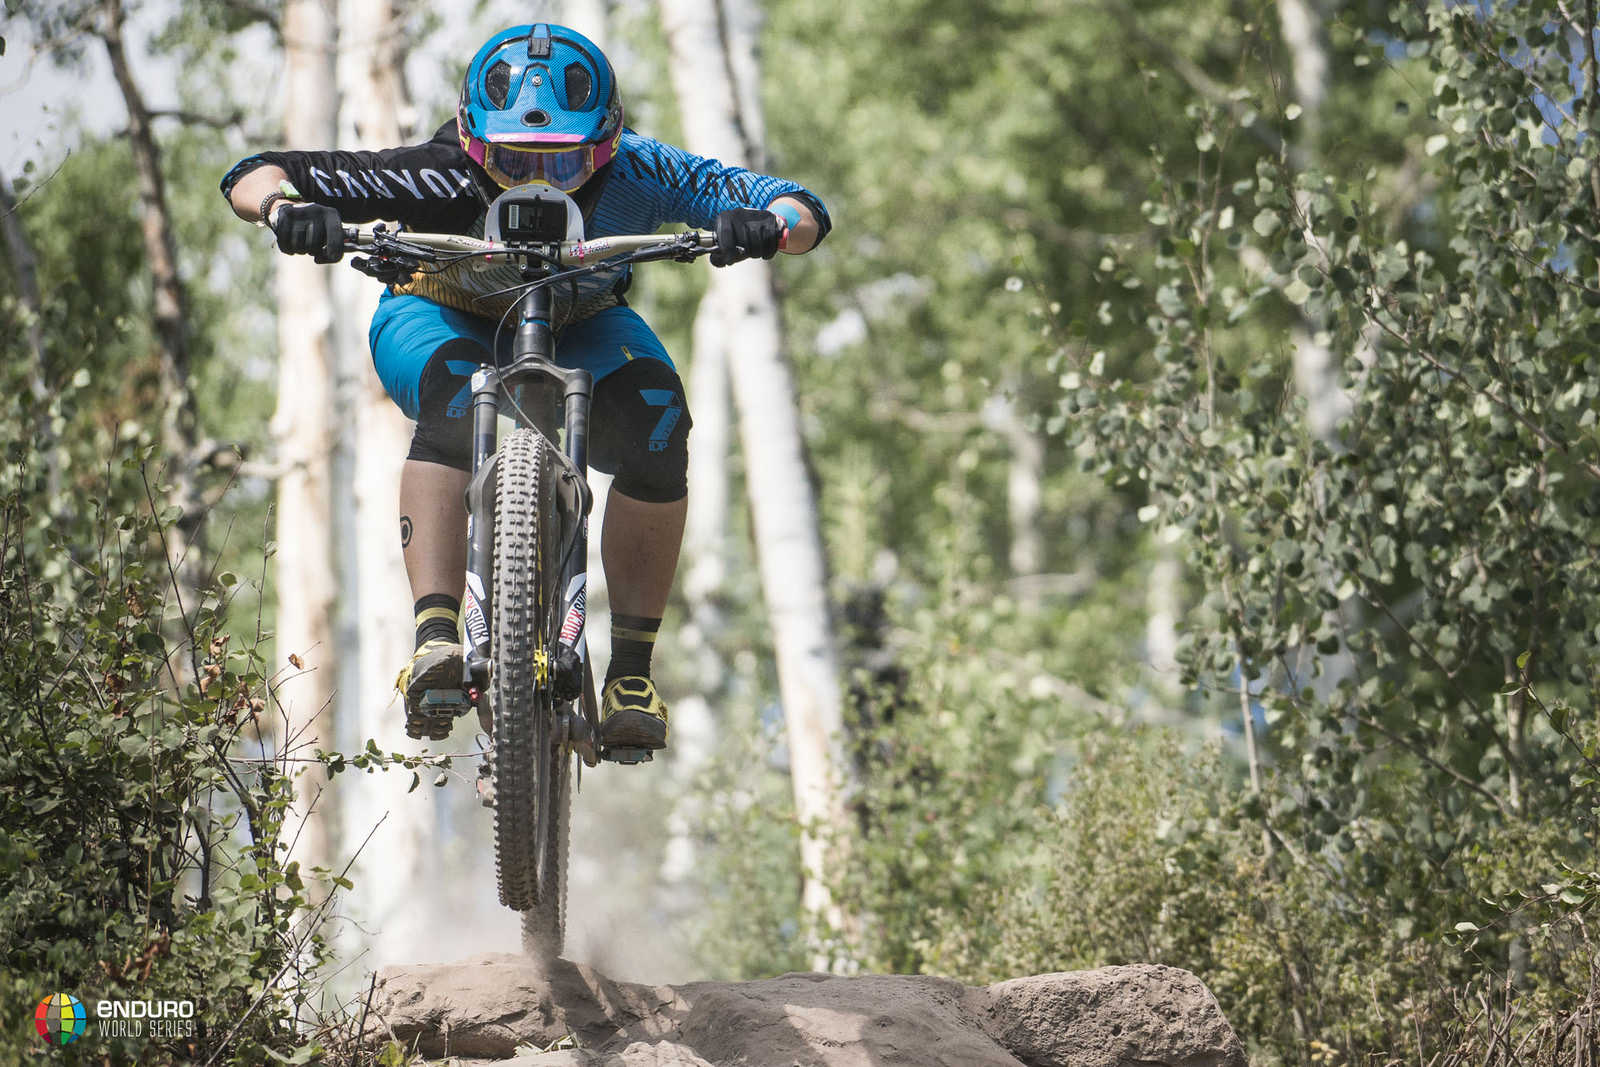 Enduro World Series highlights set for mainstream TV distribution